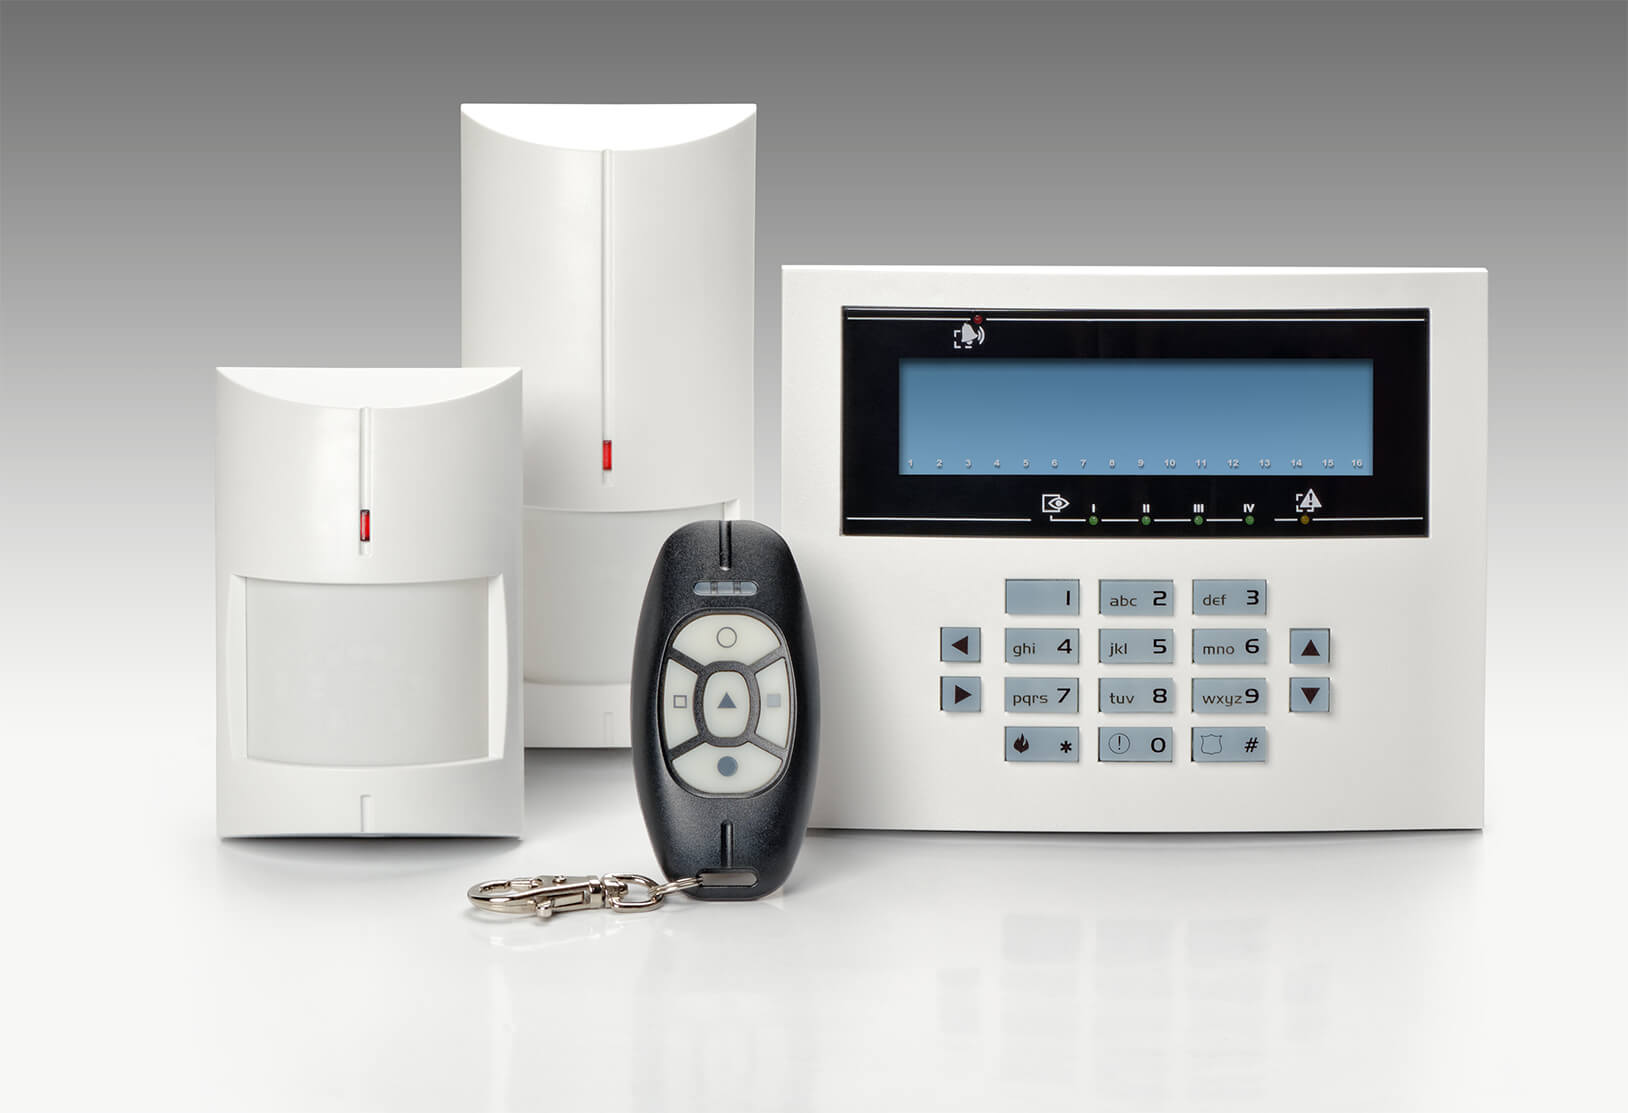 commercial NACOSS Approved {alarms} In Paddington W10 - Local Paddington W10 security company.Call 02078872244 - Dedicated to Safety & Security.Trusted by 1000's in Paddington W10